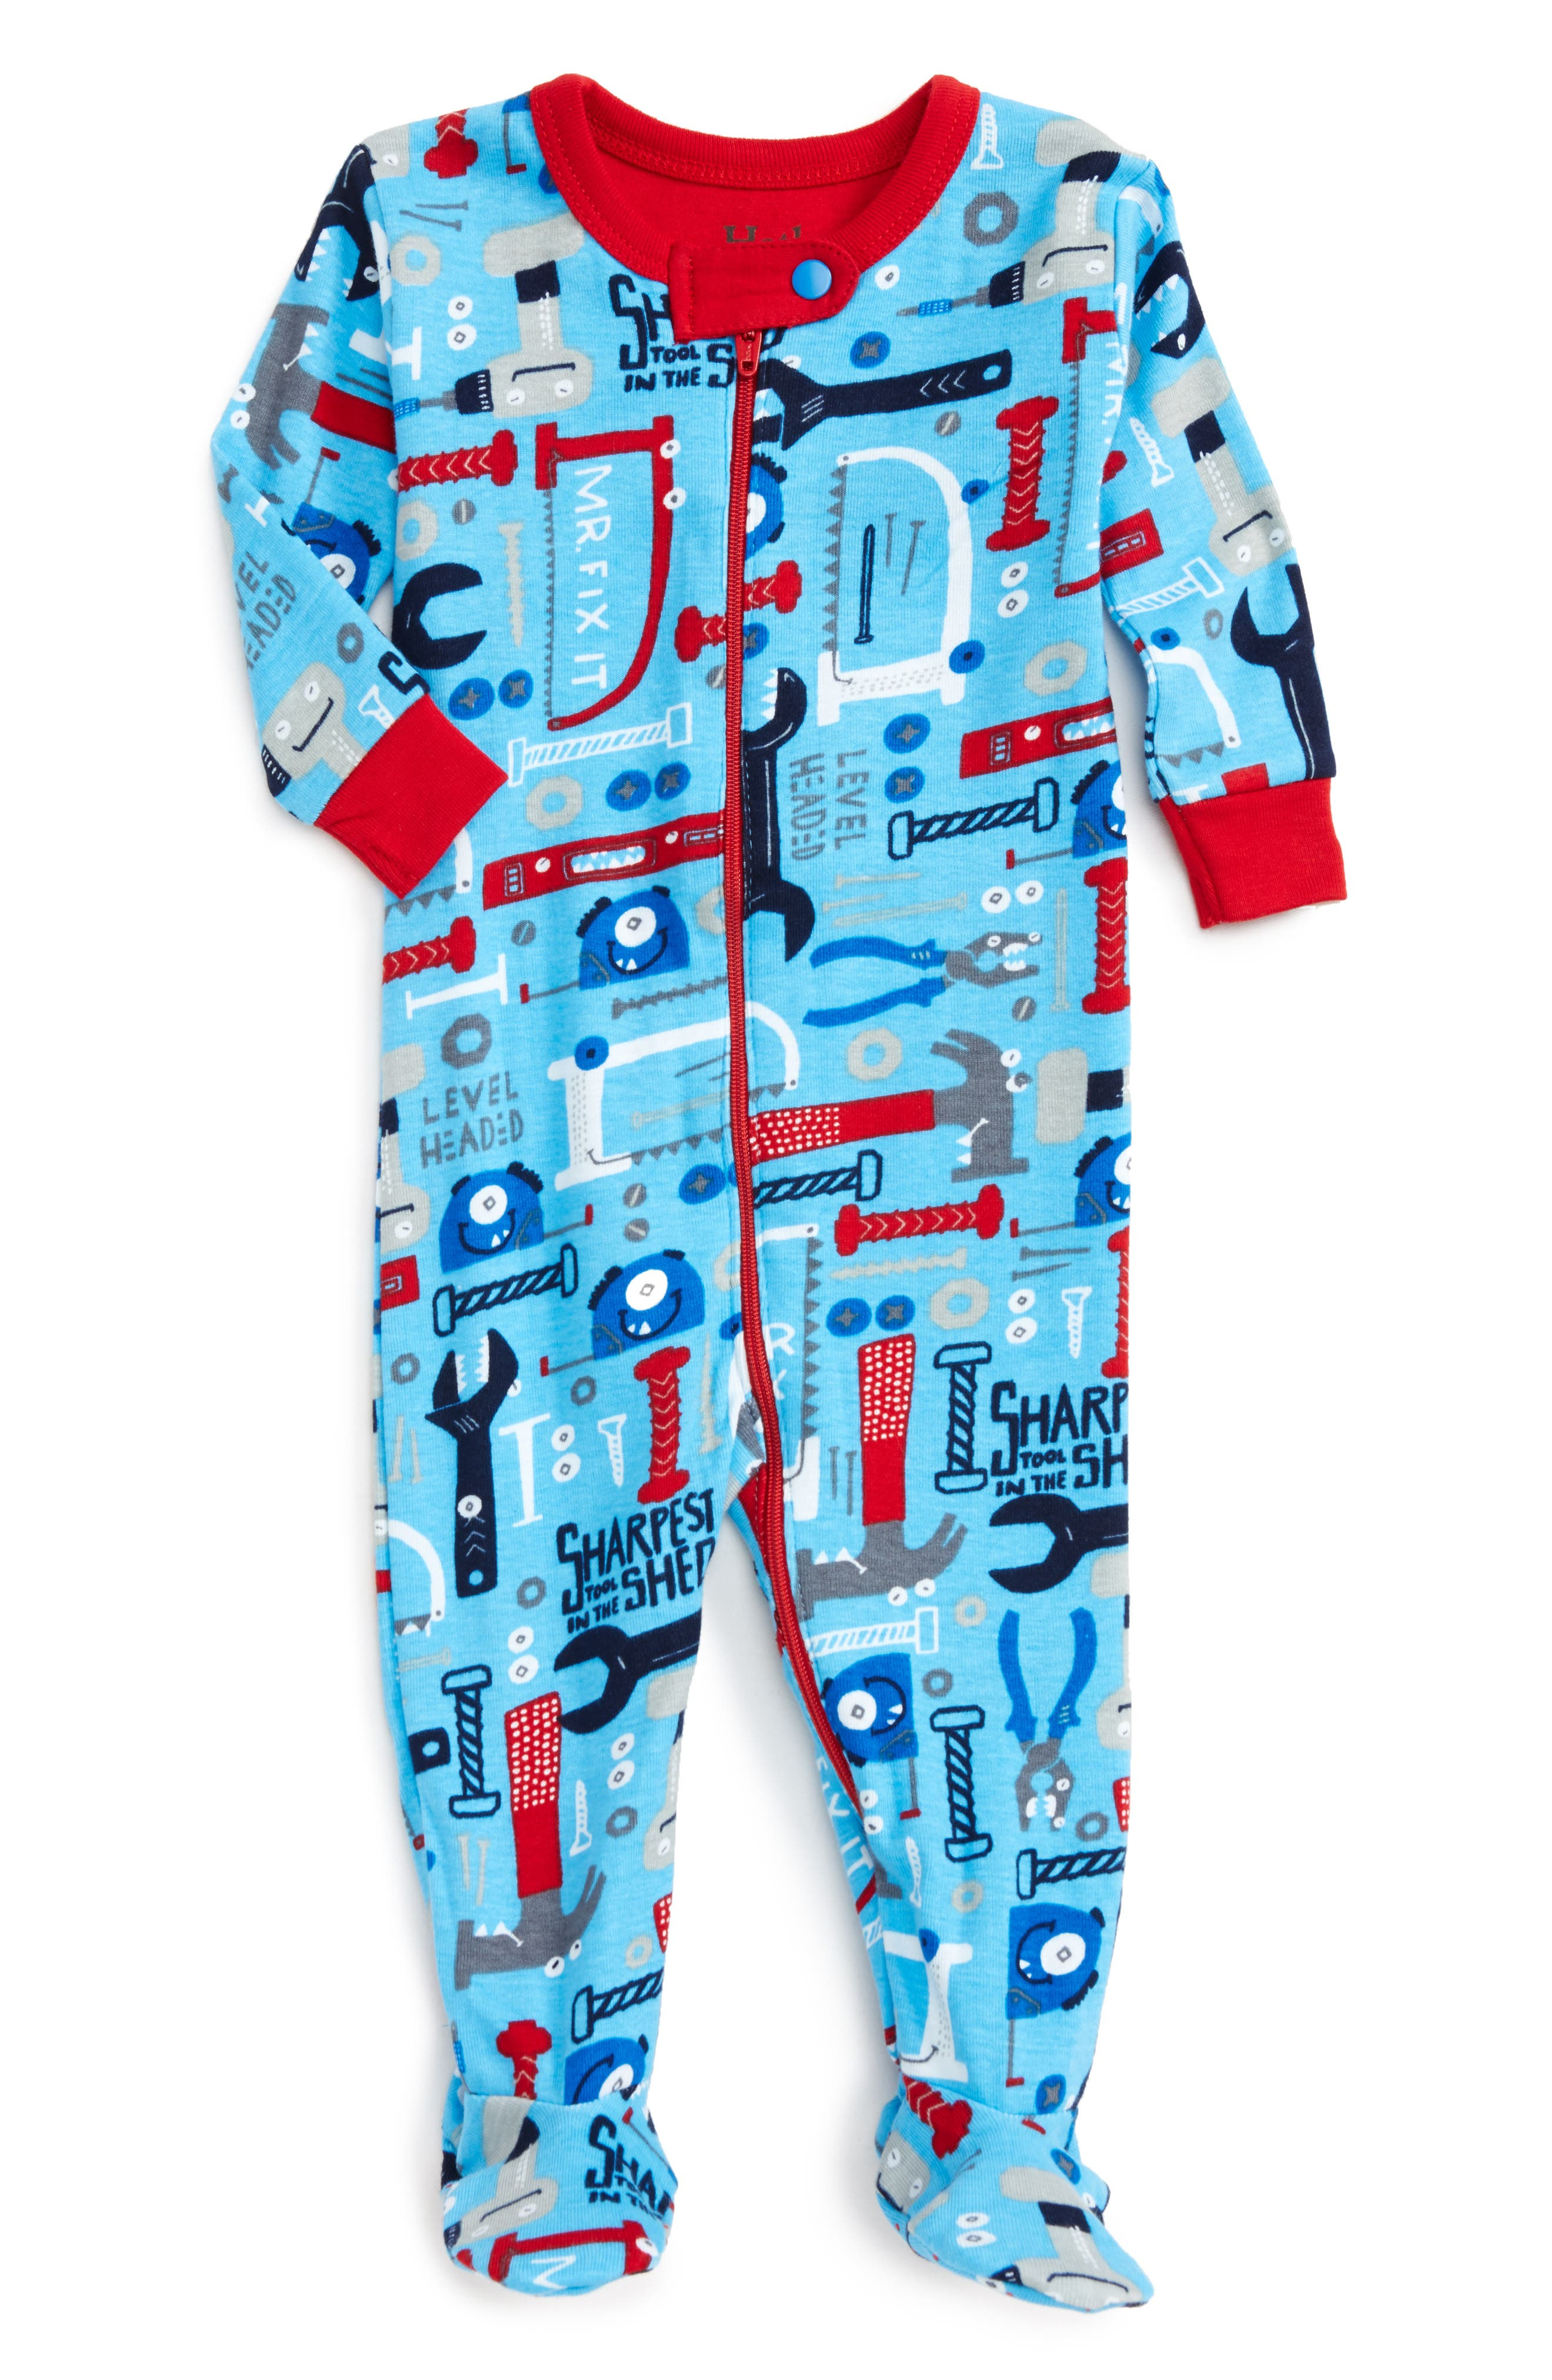 Main Image - Hatley Organic Cotton Fitted One-Piece Footie Pajamas (Baby Boys)